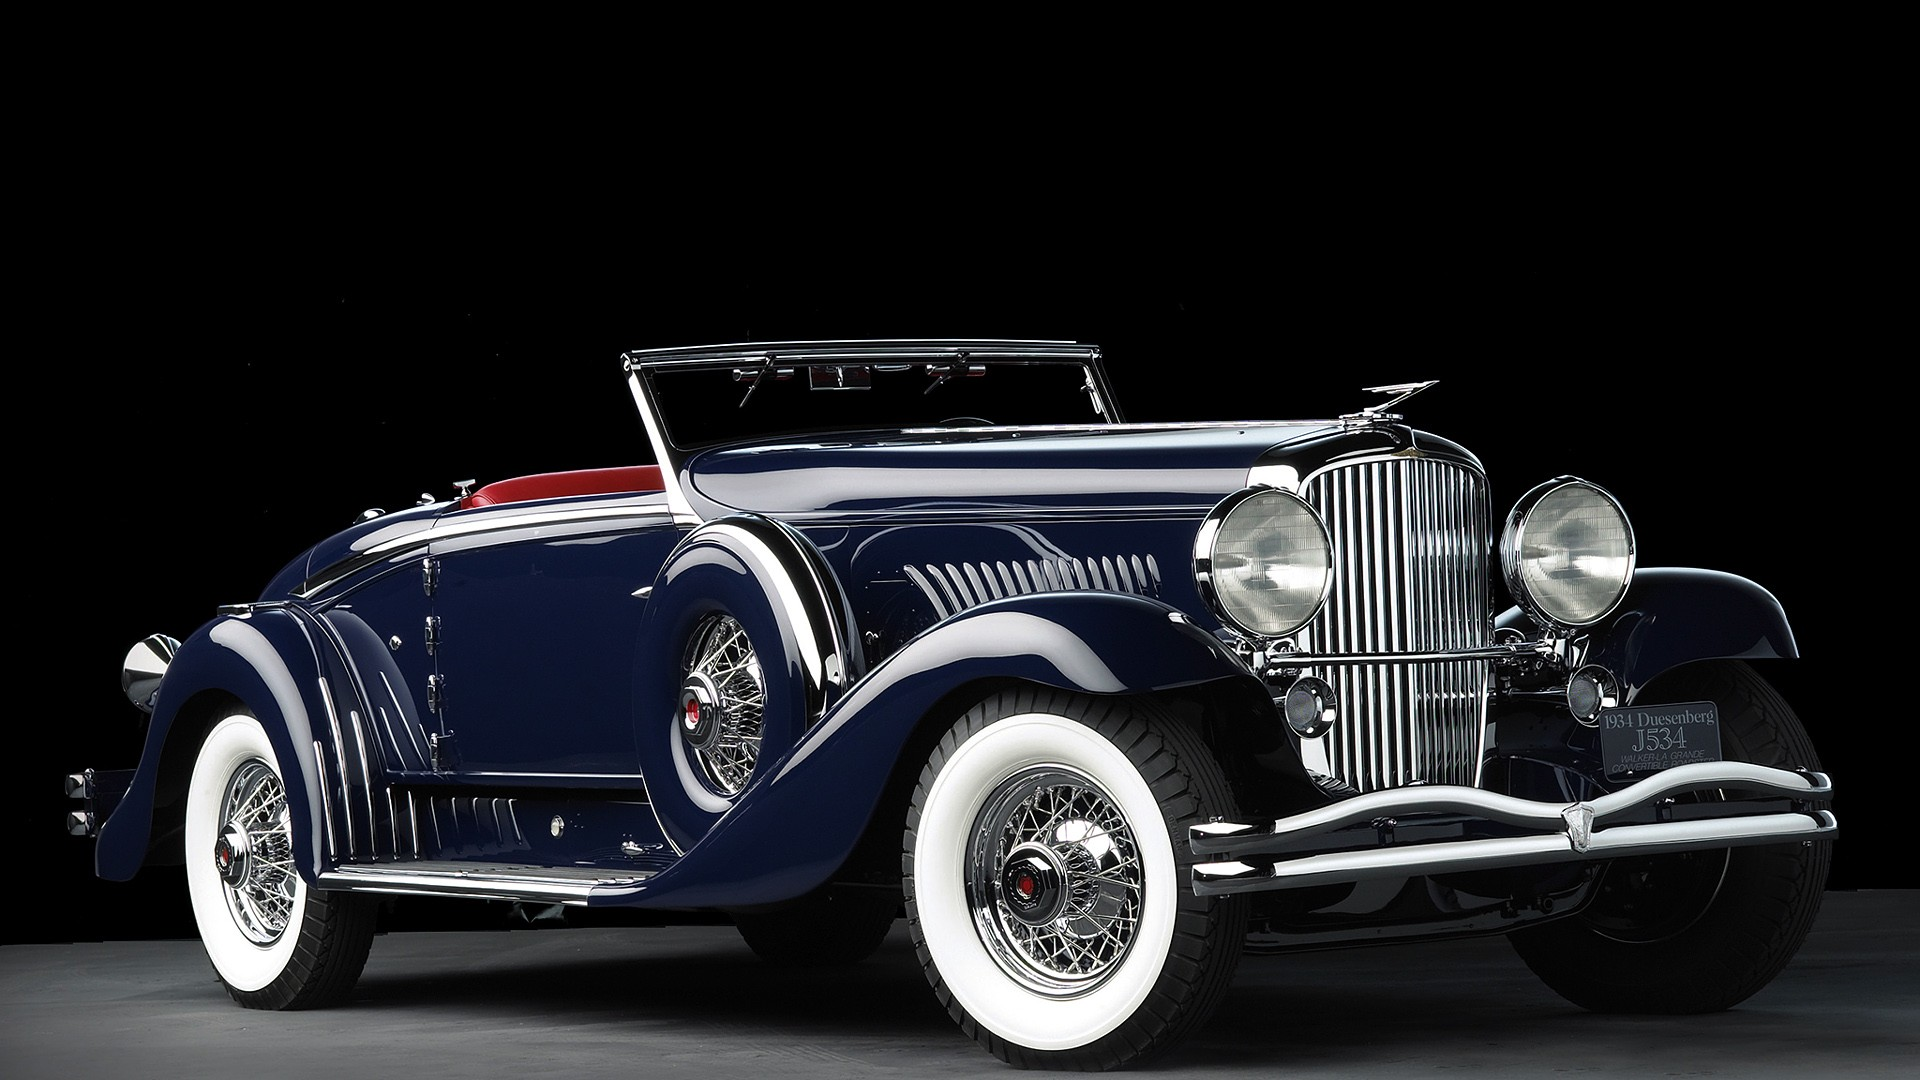 Classic Cars Wallpaper Hdretro Vintage Hd Wallpapers Hd Wallpapers Inn 1920x1080